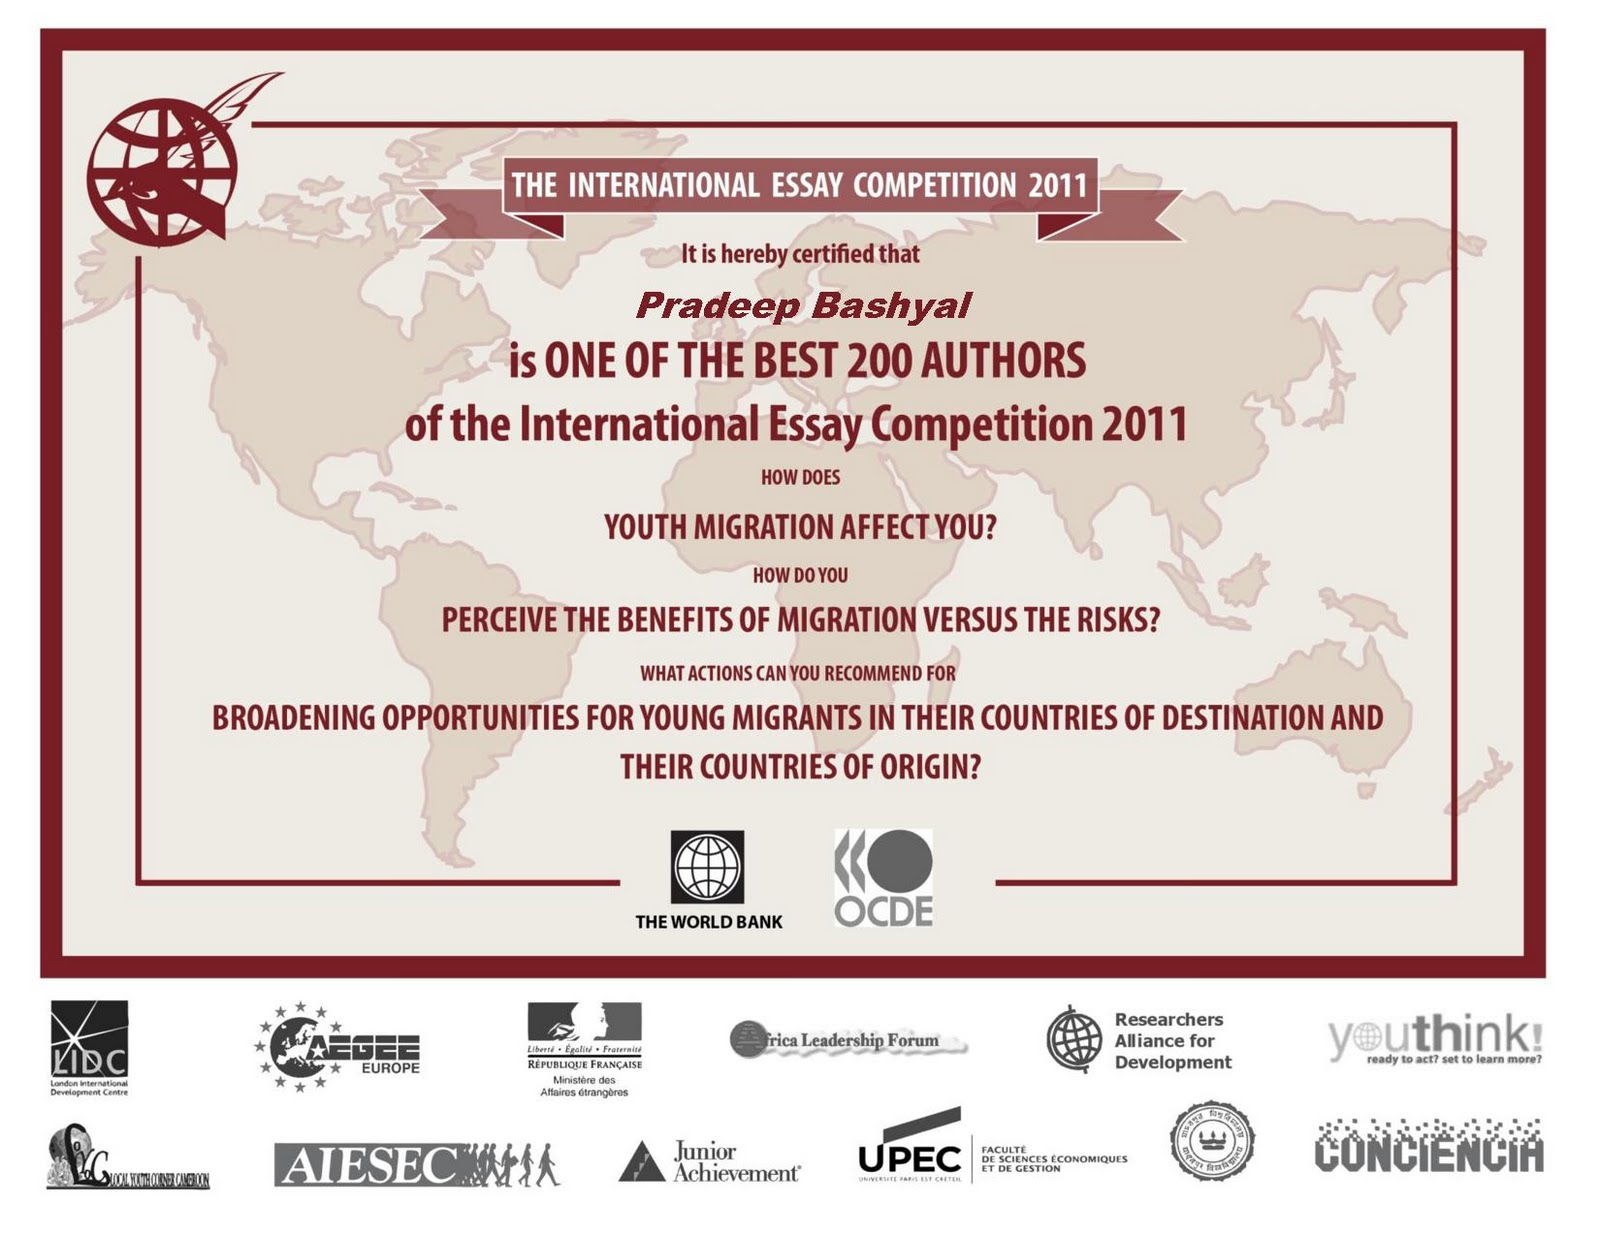 pradeep bashyal international essay competition on youth migration international essay competition on youth migration